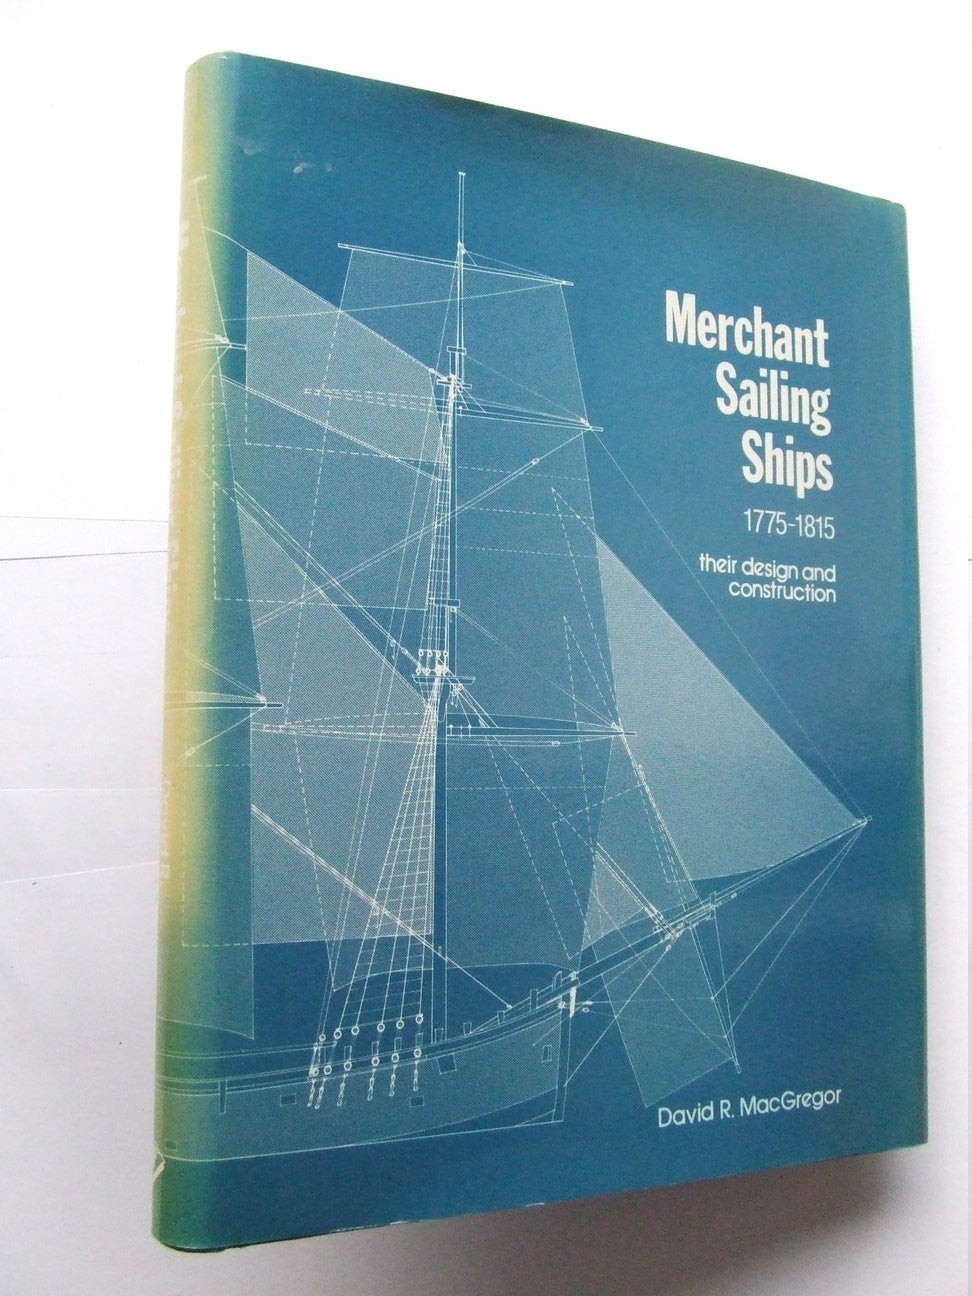 Merchant Sailing Ships 1775-1815, their design and construction